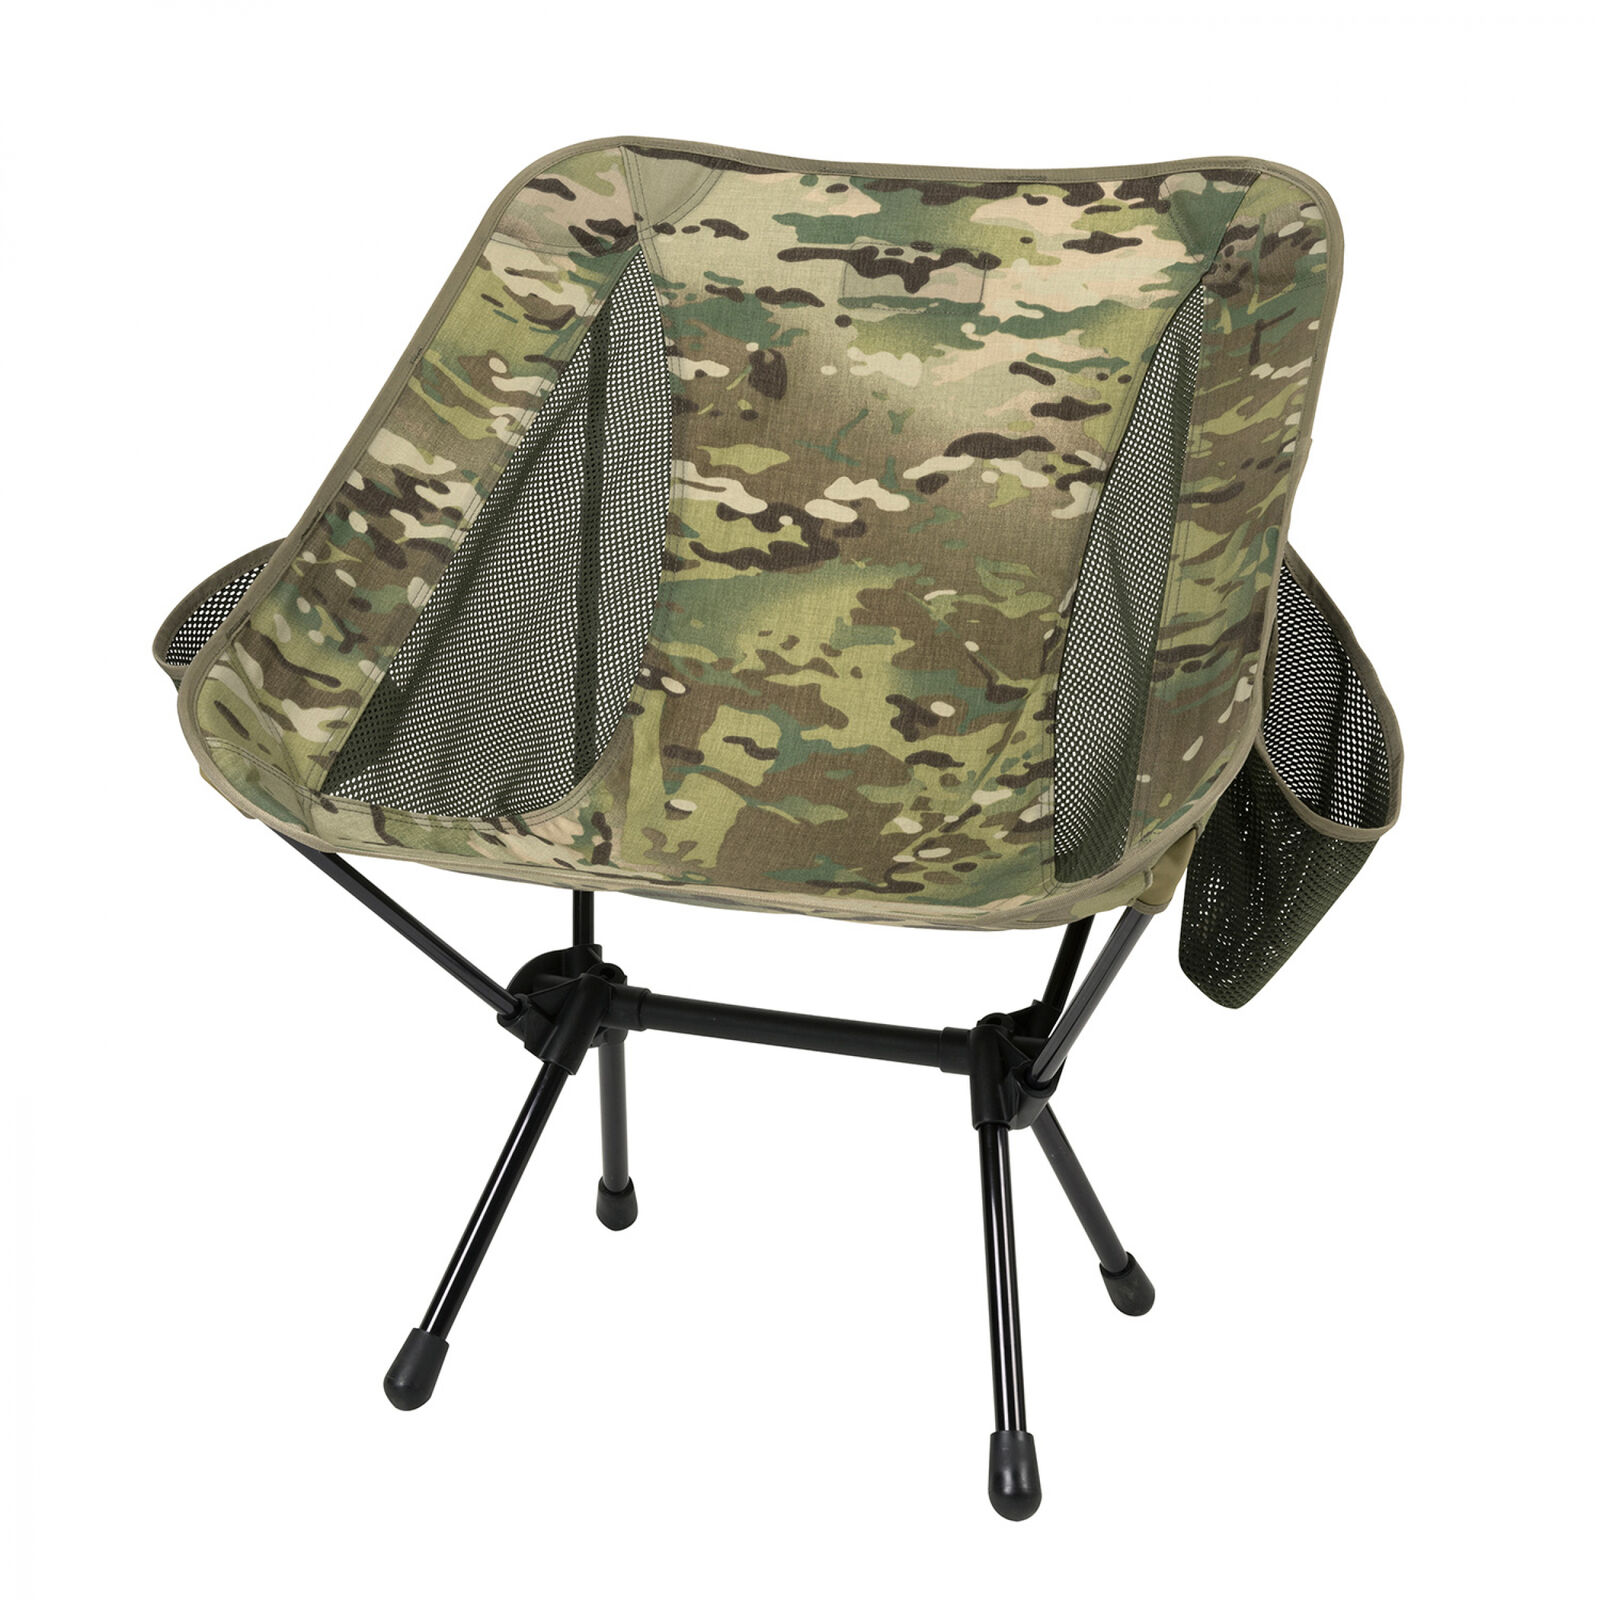 Helikon-Tex Range Chair Campingstuhl Outdoor Airsoft Angeln Jagd - Multicam